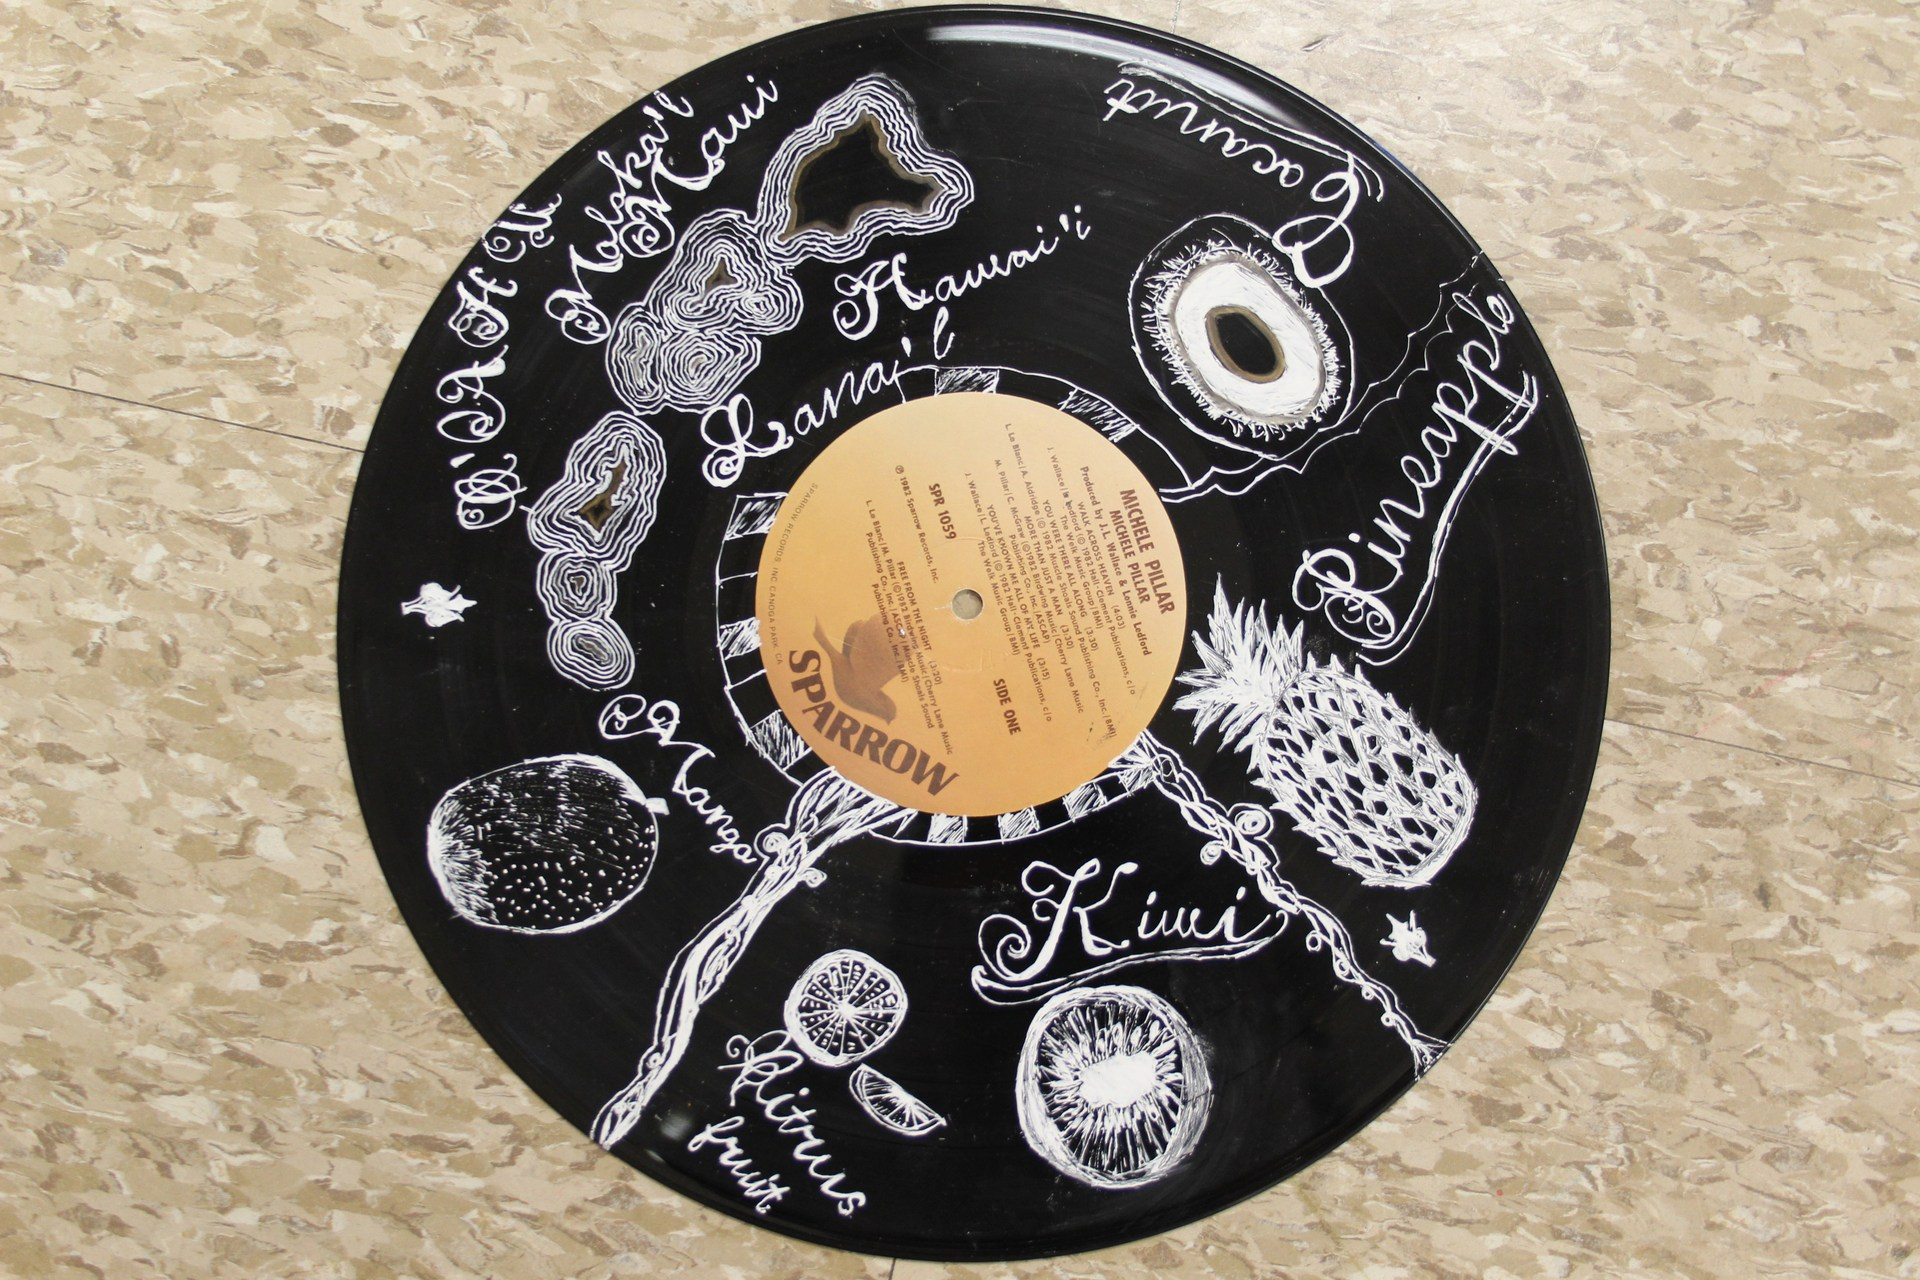 drawing of a record